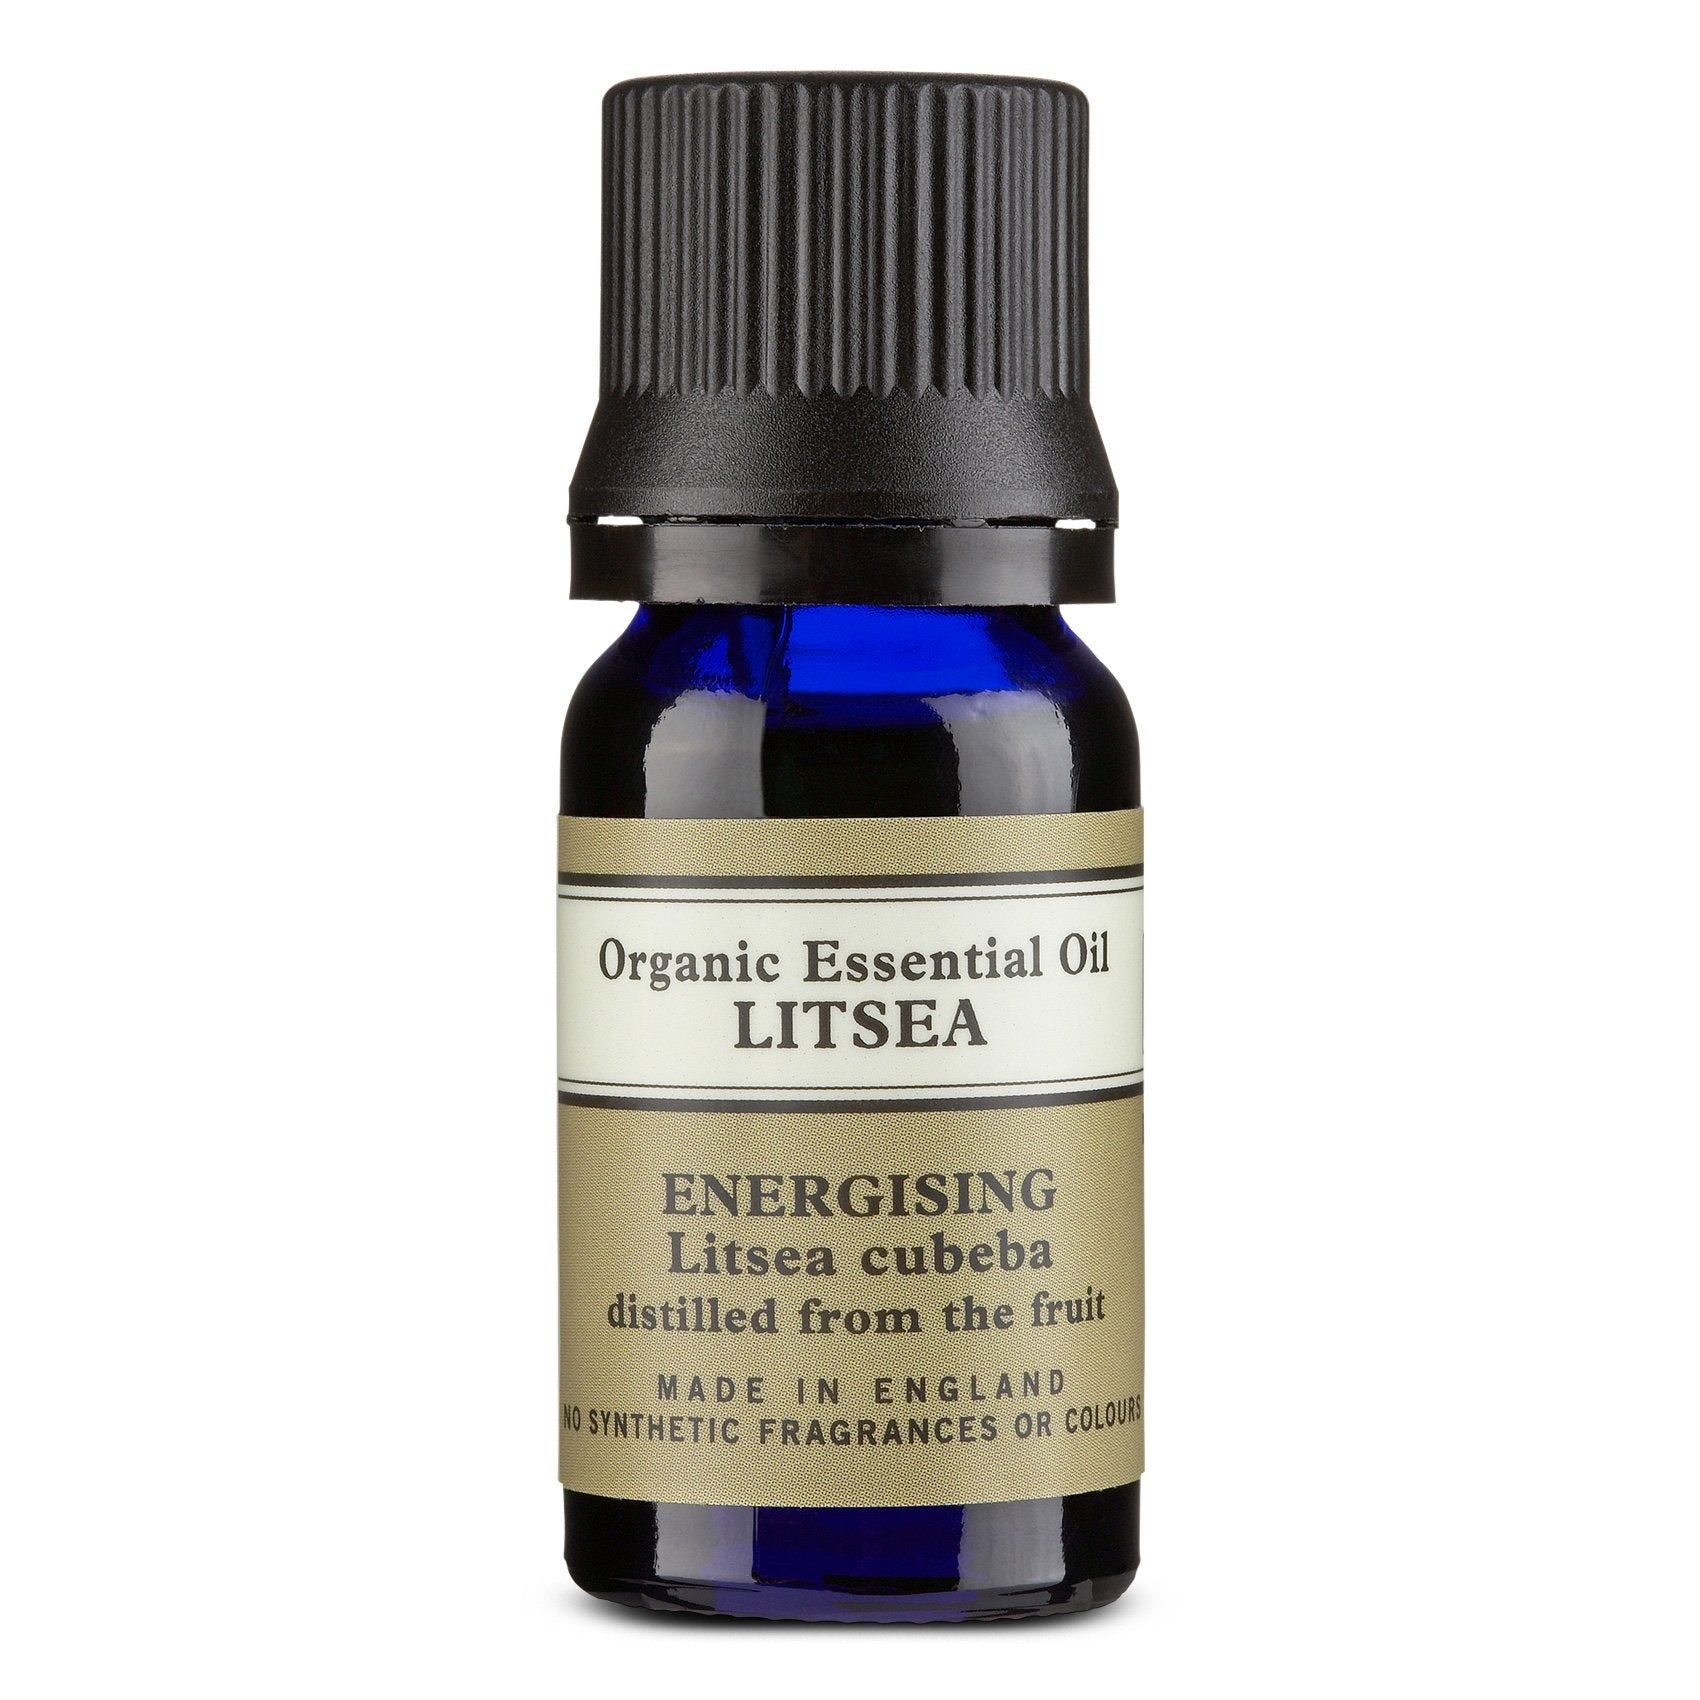 Litsea Organic Essential Oil